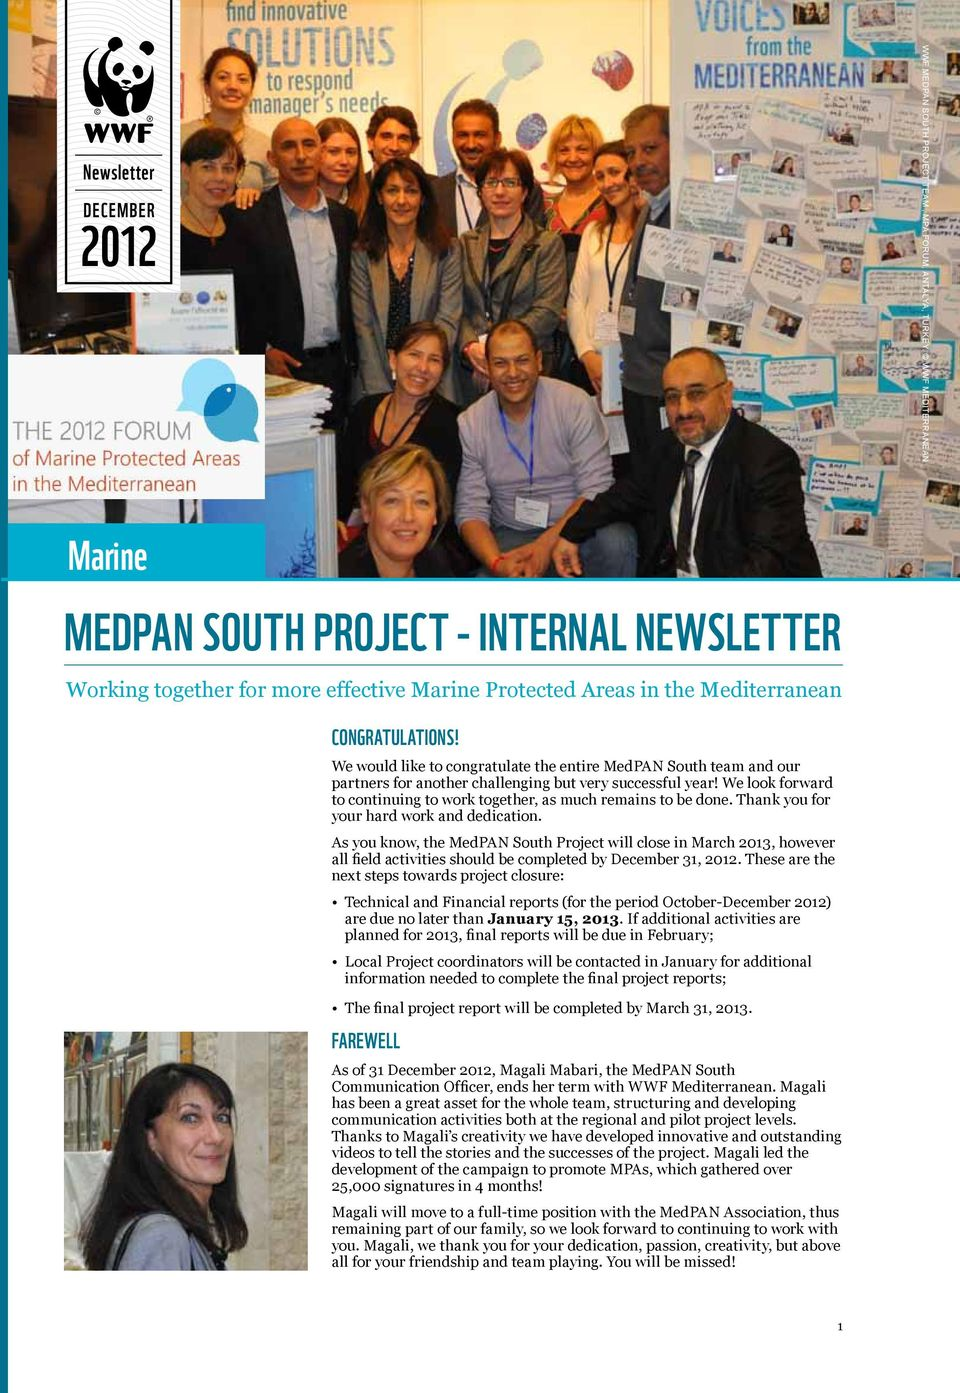 We would like to congratulate the entire MedPAN South team and our partners for another challenging but very successful year!